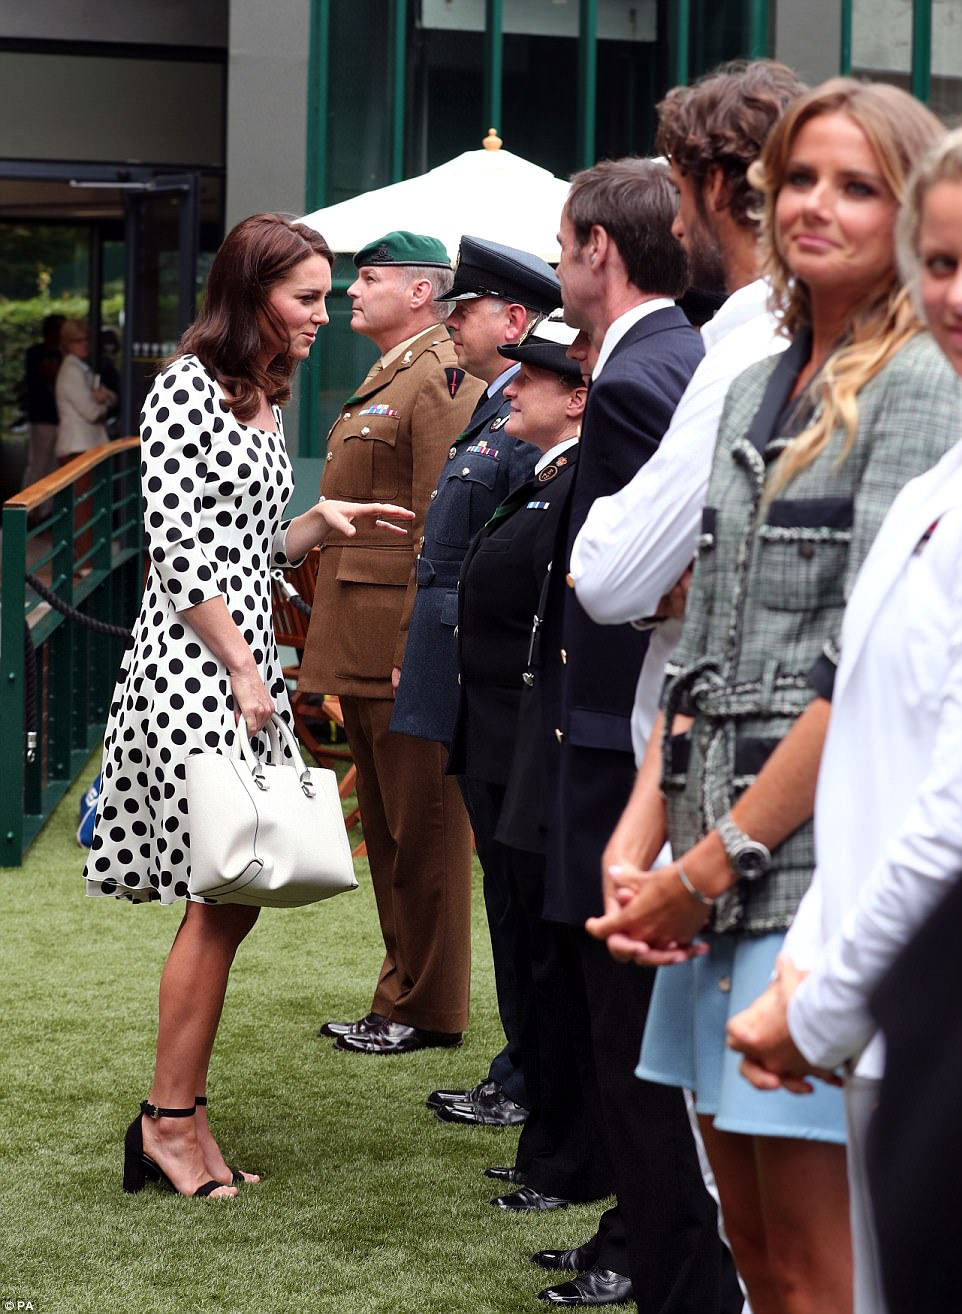 The Duchess is spending time meeting people who carry out essential behind-the-scenes work at Wimbledon, before watching Andy Murray on Centre Court